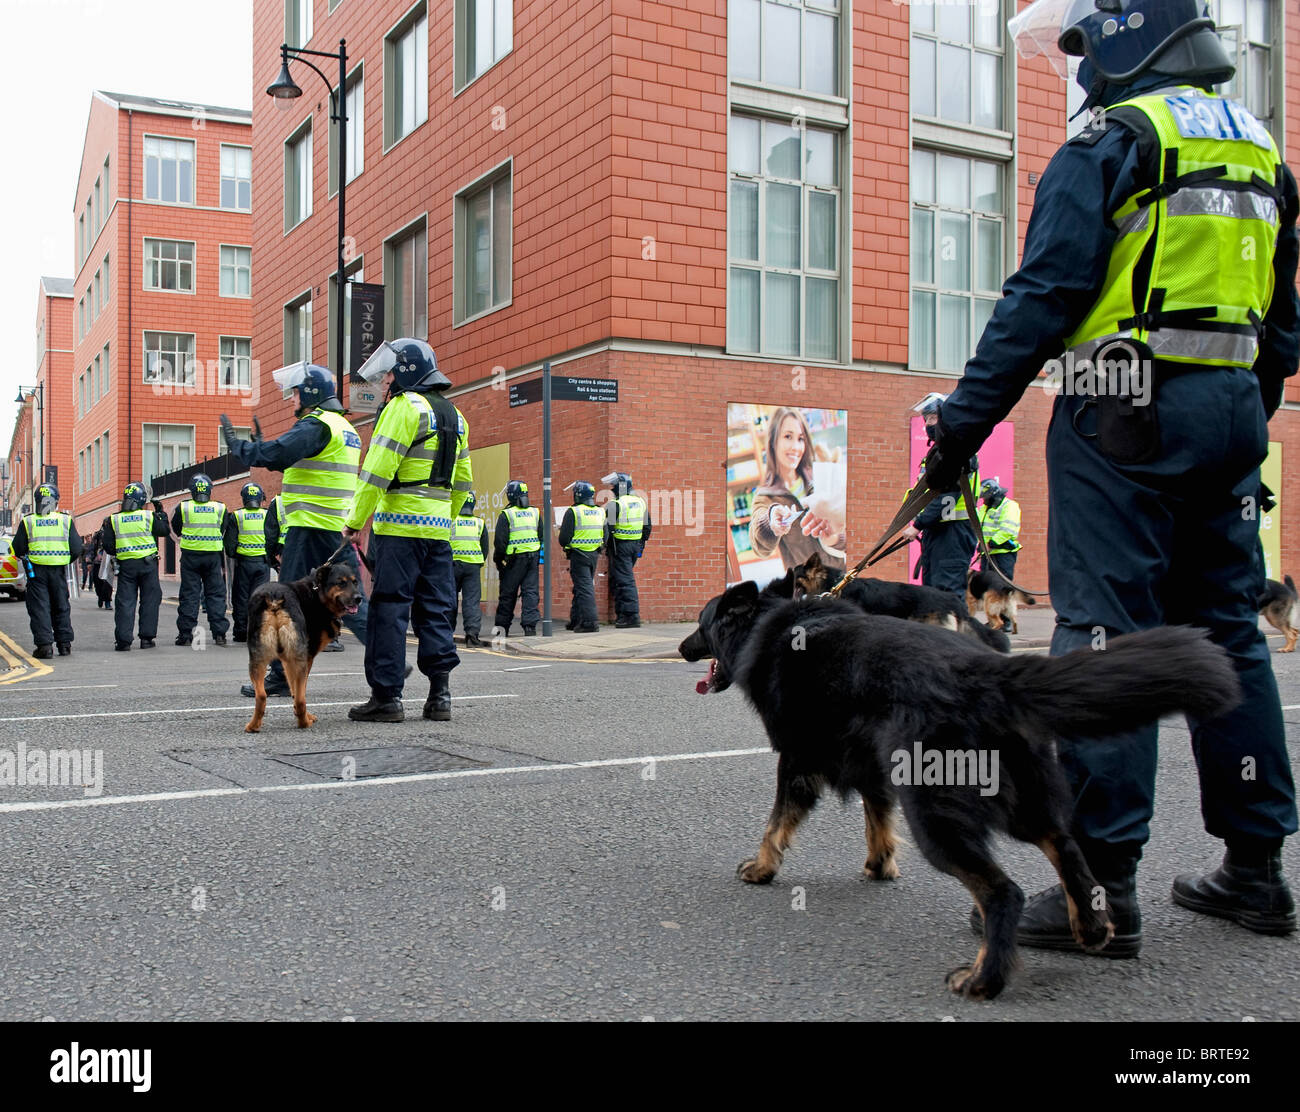 Police Dog Unit stand guard as The English Defence League demonstrate in Leicester. 9th October 2010. - Stock Image